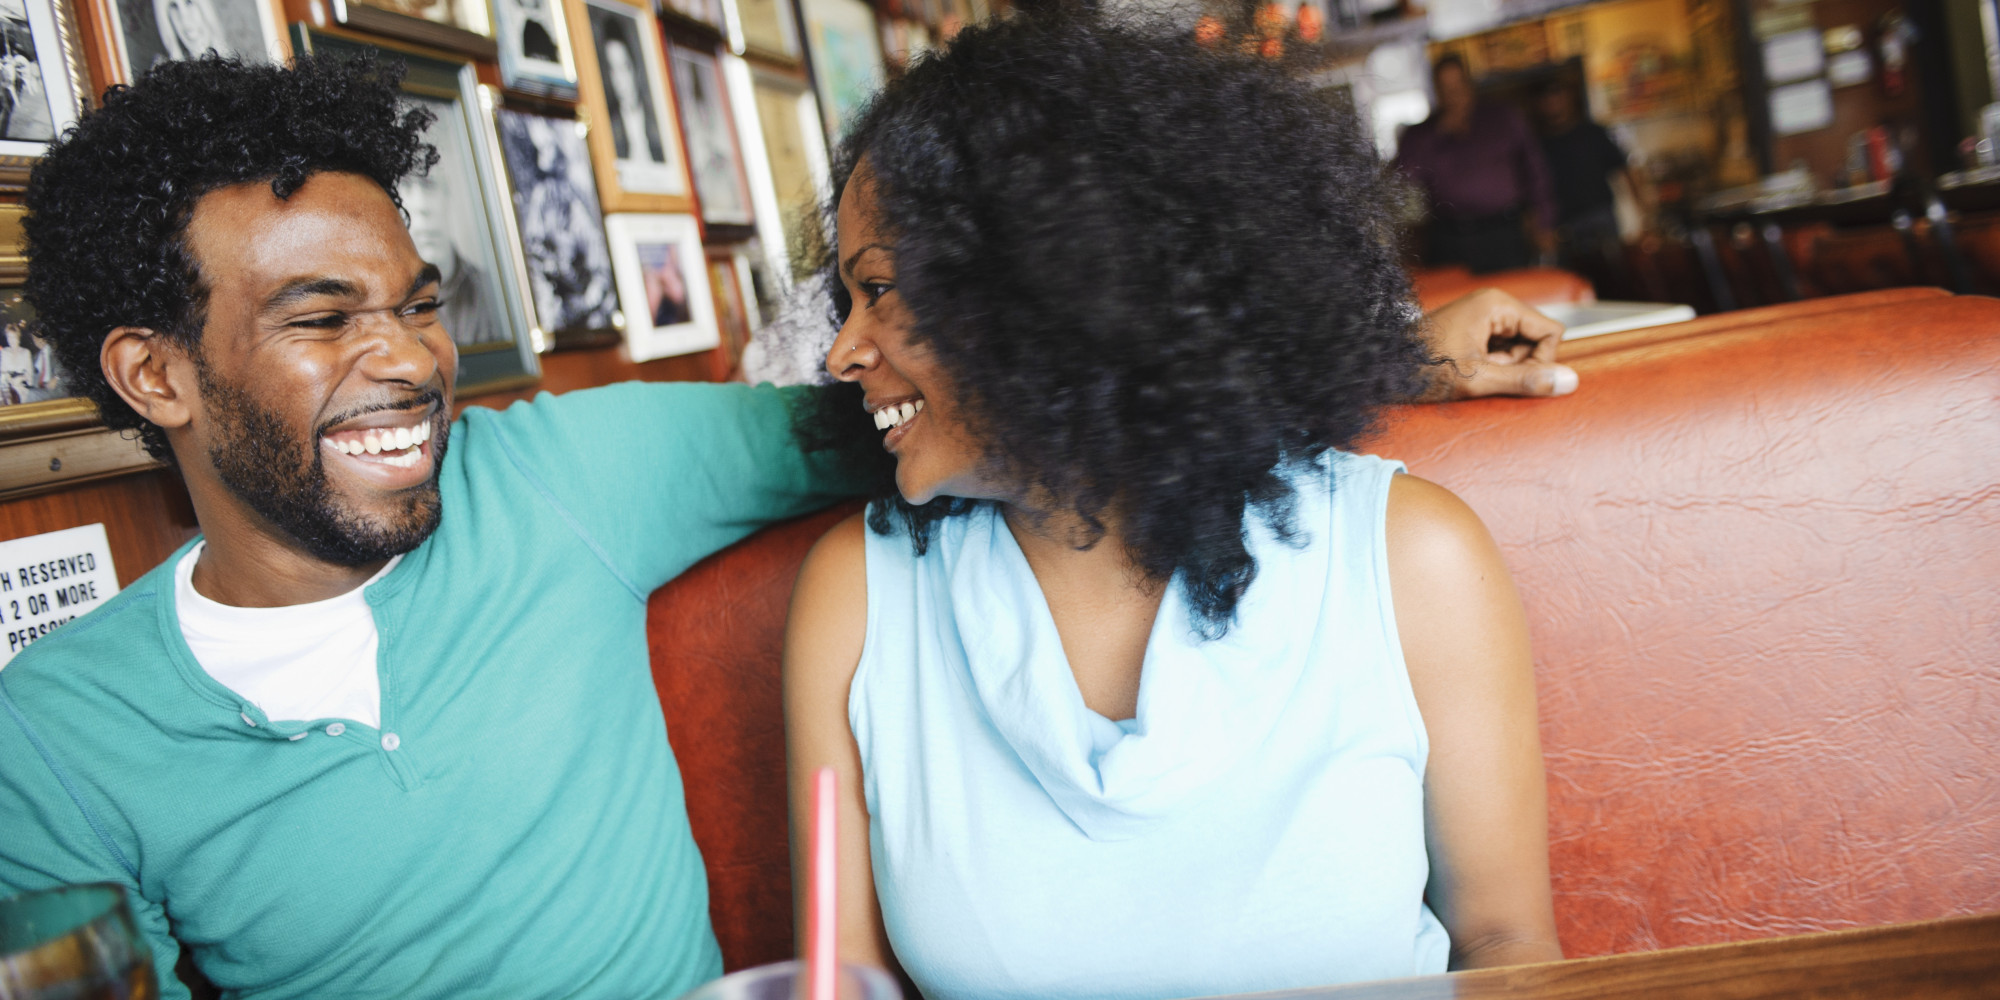 rowe black girls personals White men dating black women: five things you should  10 things black women wish white men knew before dating them  before dating a black girl.